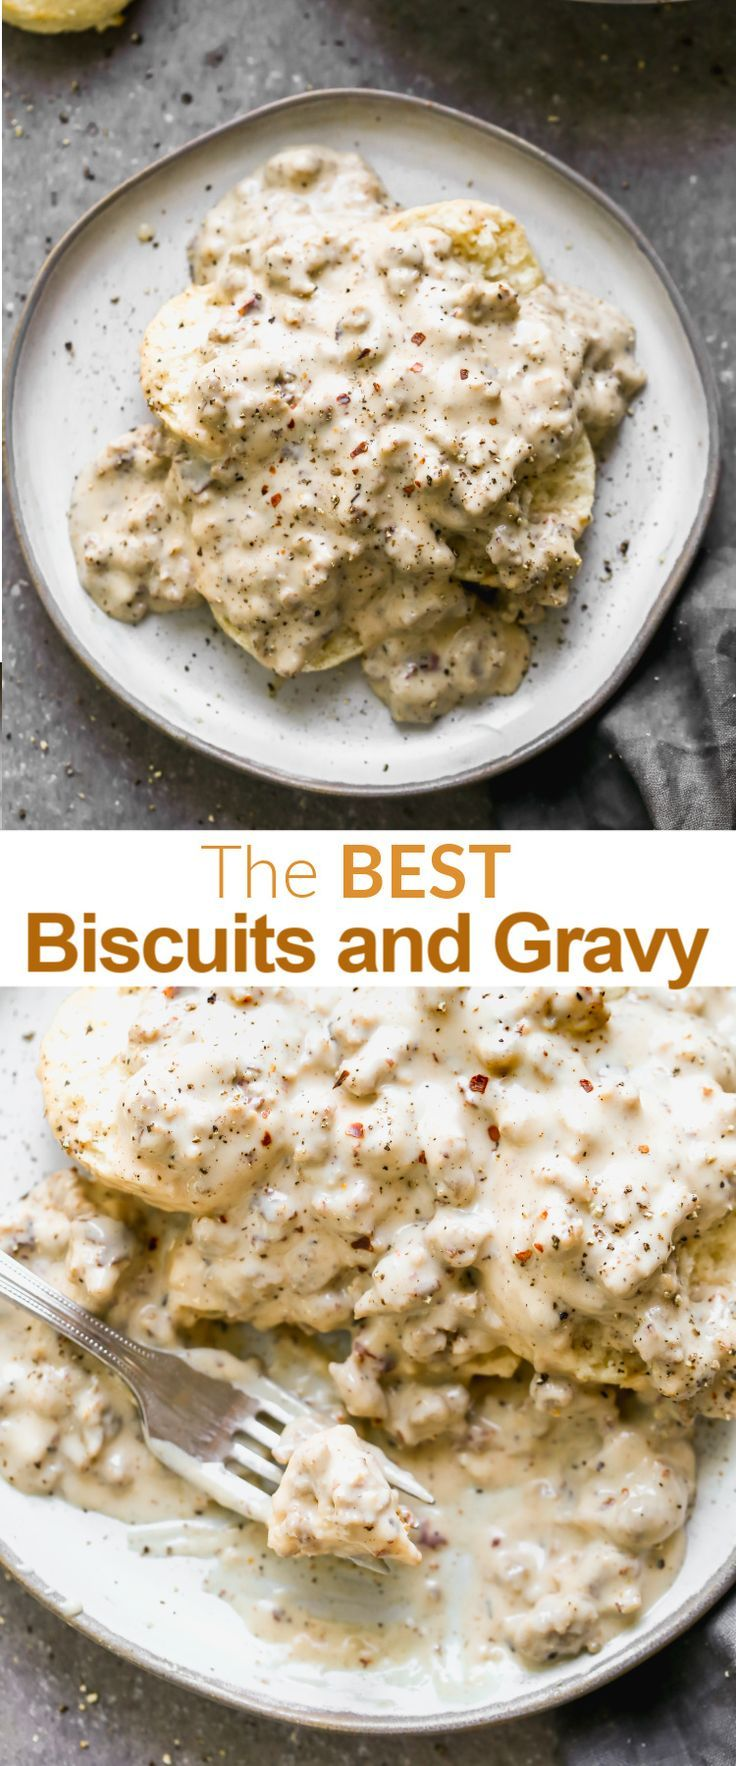 Best Ever Biscuits And Gravy Recipe In 2020 Best Biscuits And Gravy Sausage Gravy Easy Biscuits And Gravy